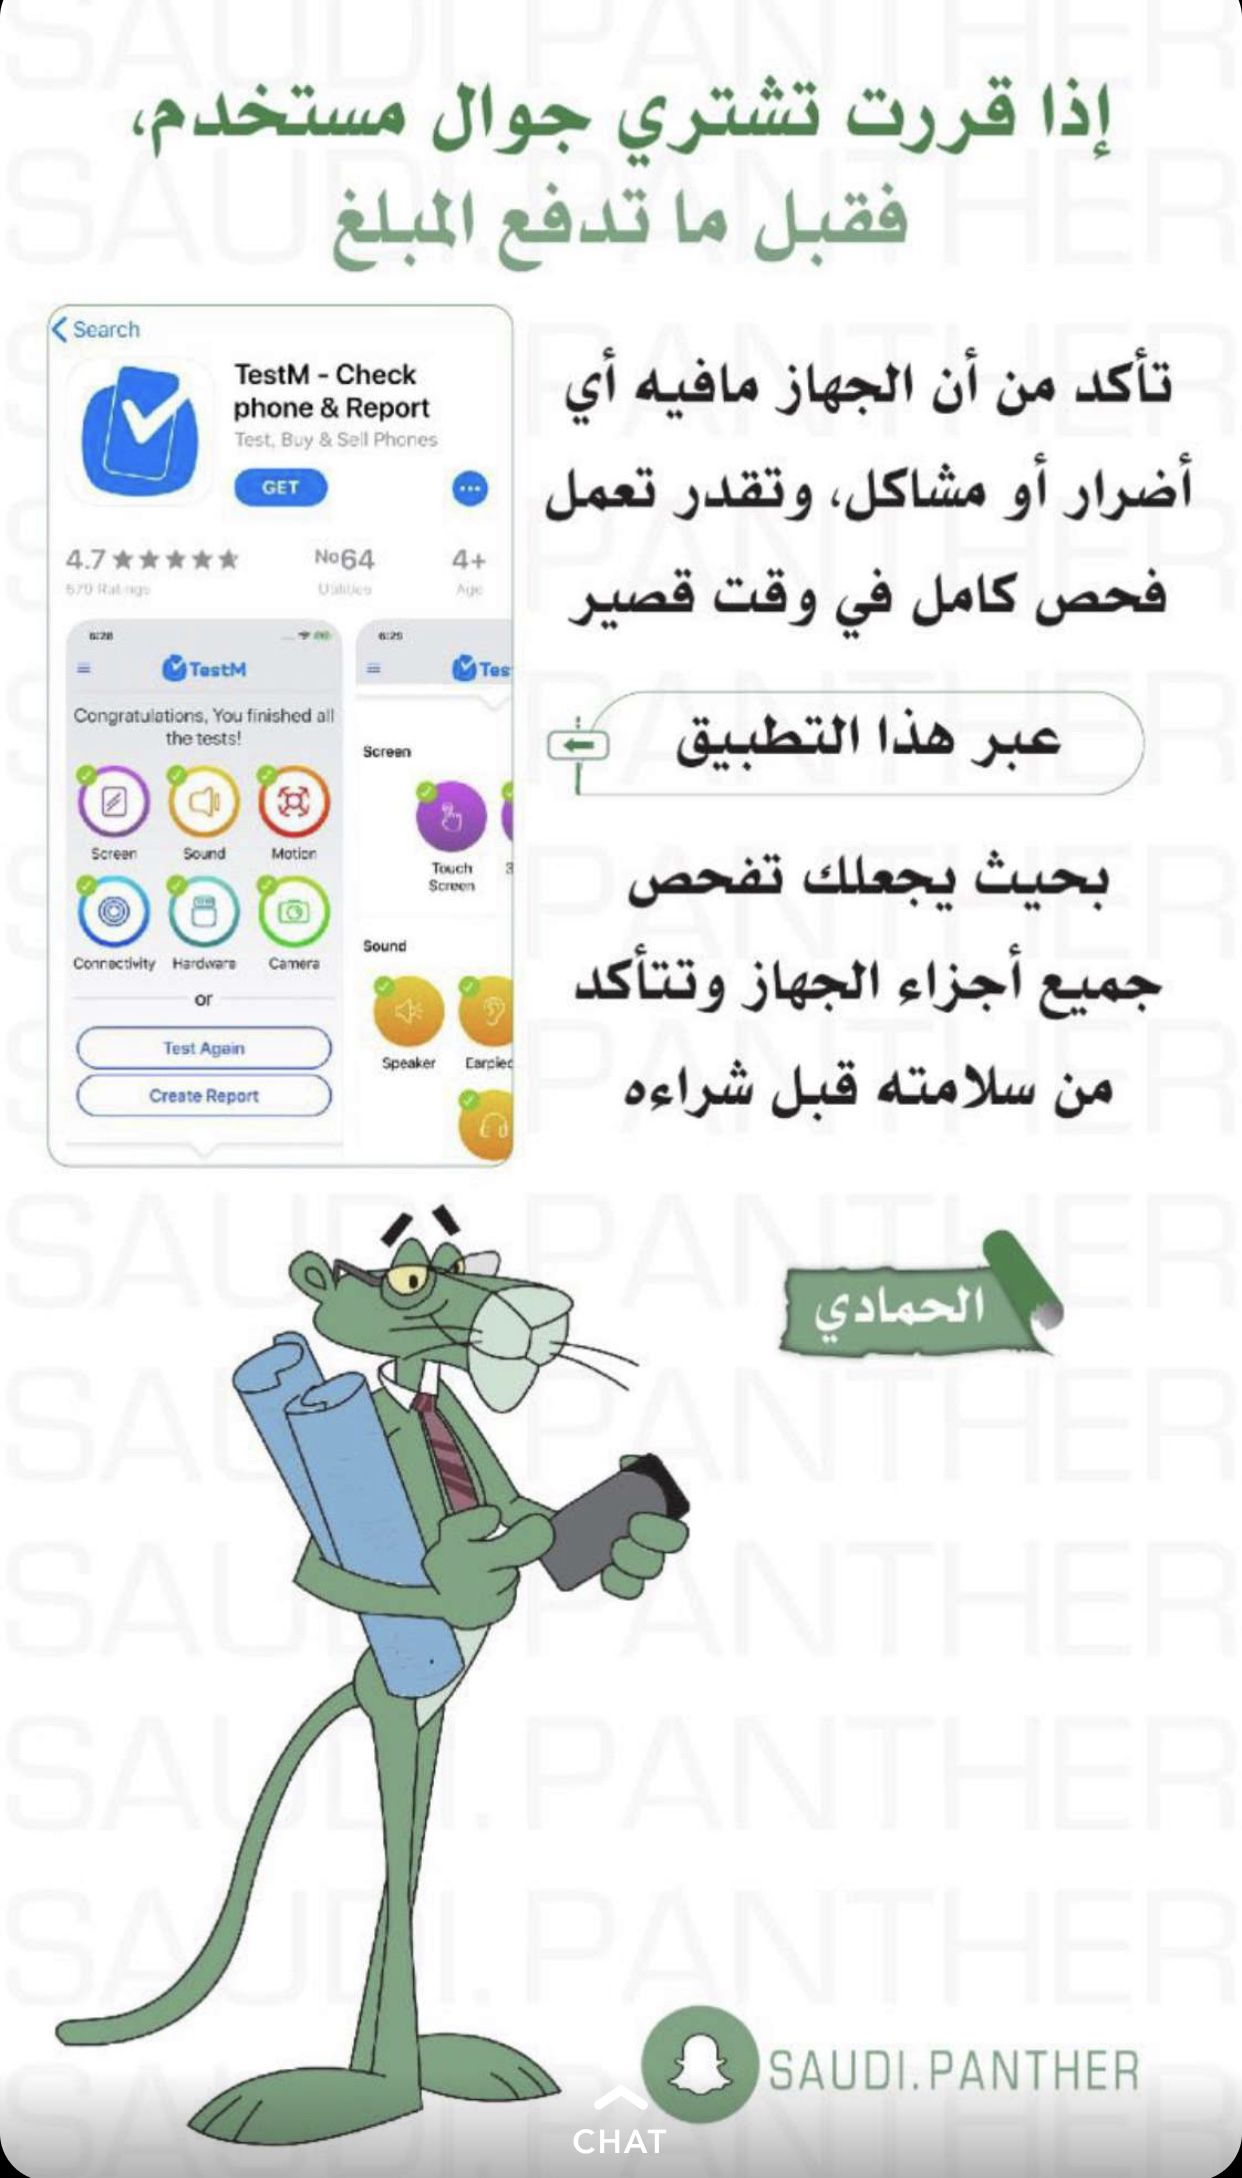 Pin by Re0o0iry on Informationsمعلومات Iphone app